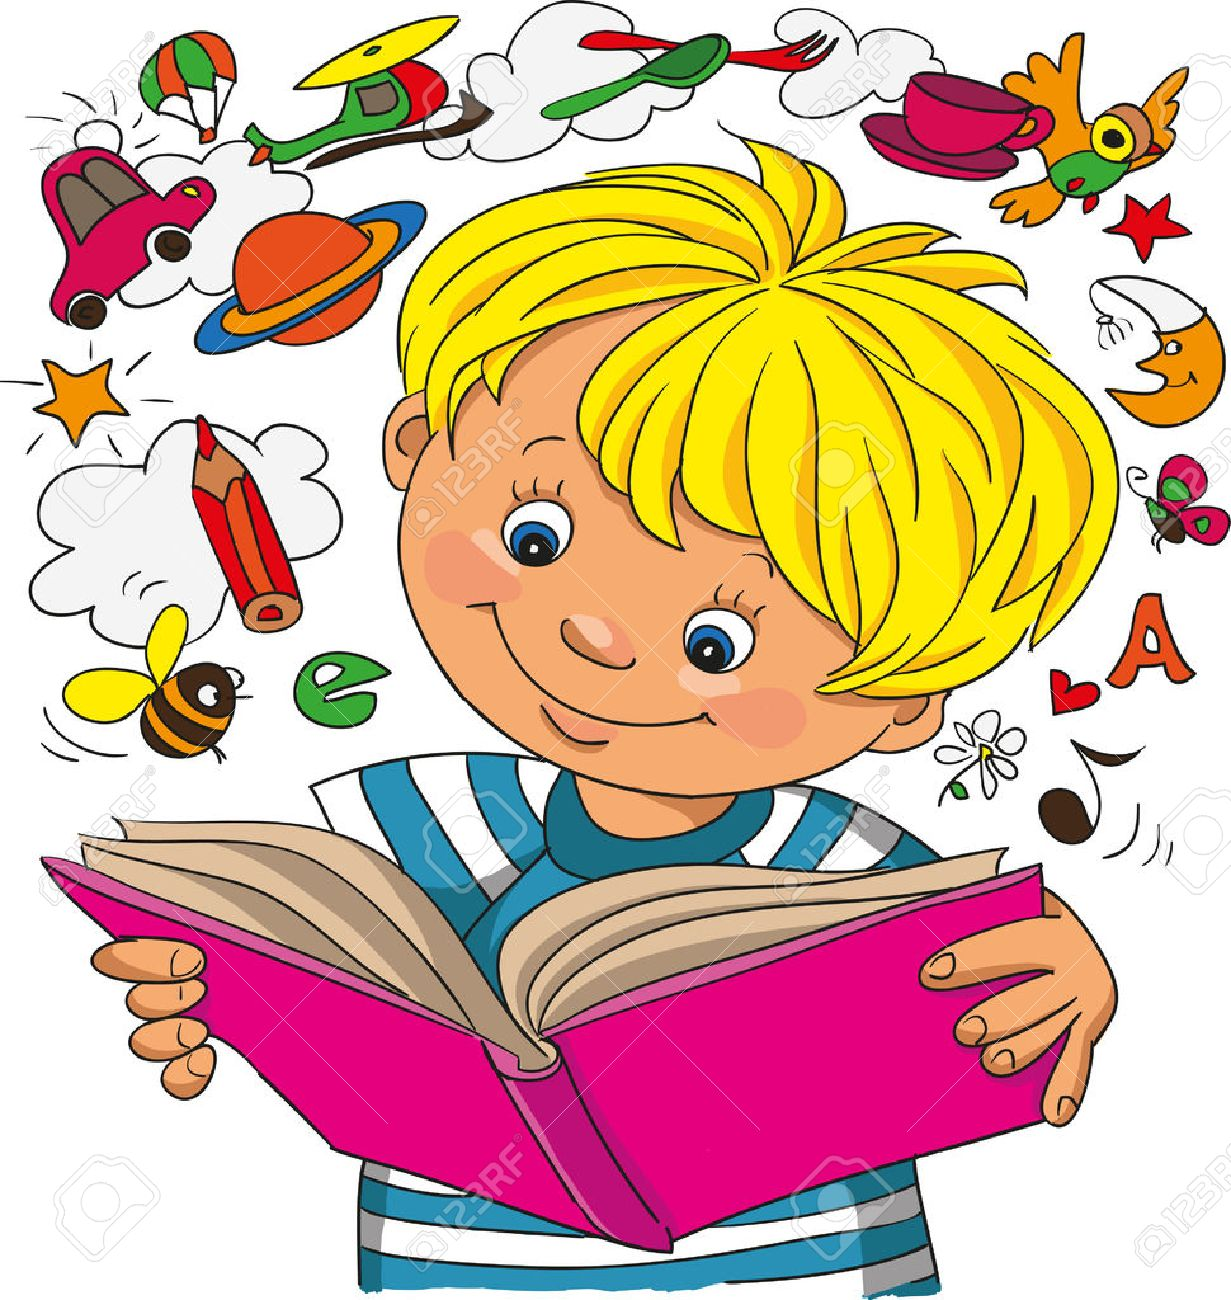 A little boy studies on a book, objects take off from a book - 46205223